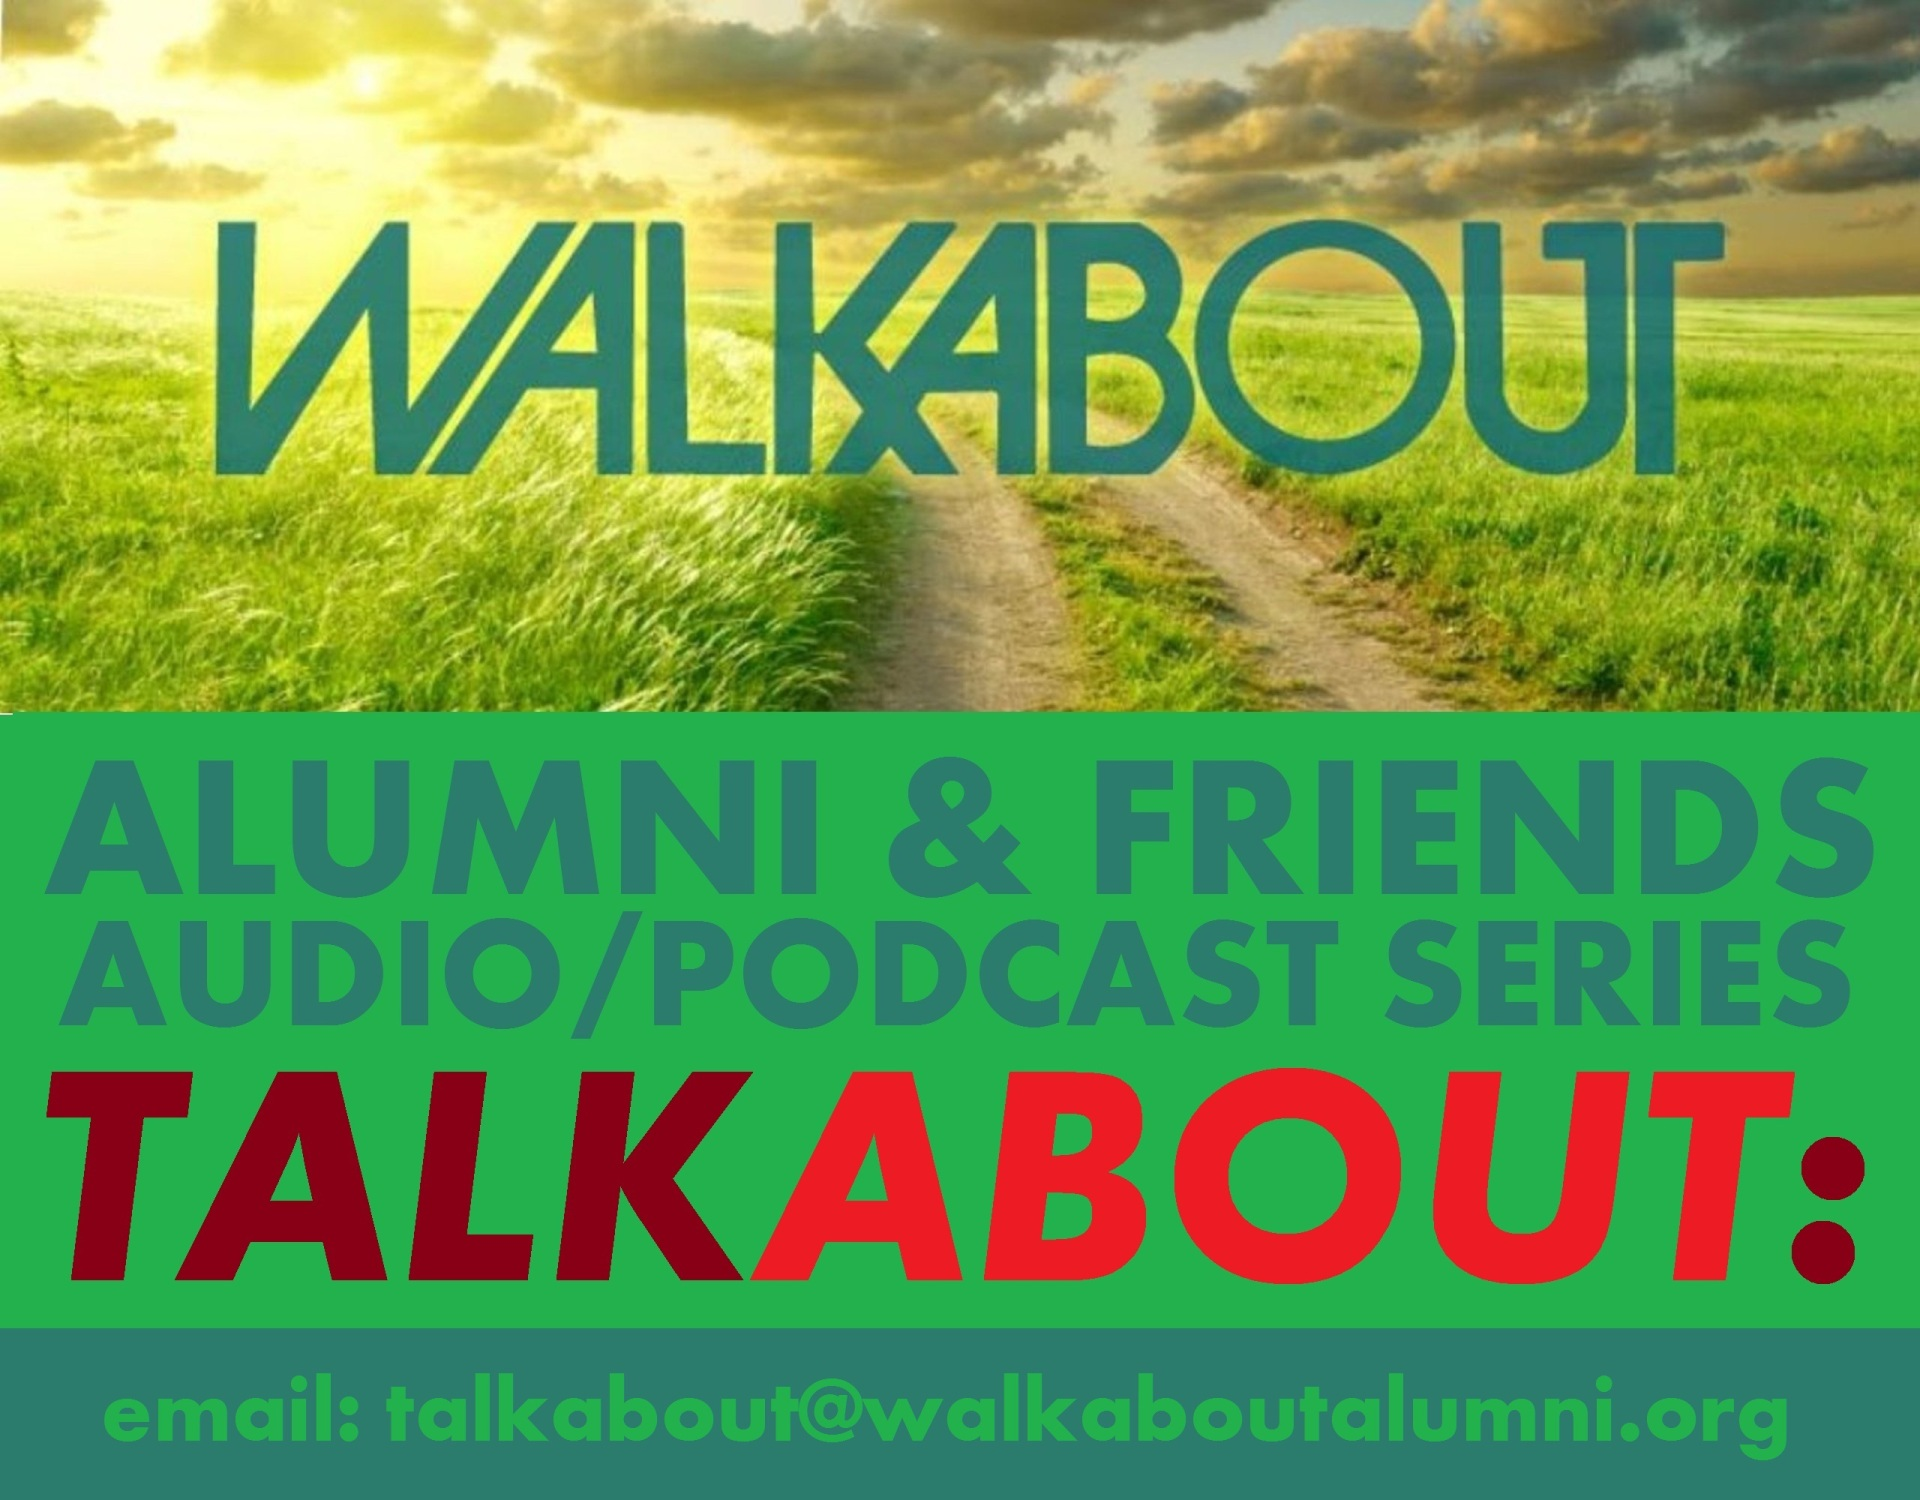 TALKABOUT - Audio-Podcast Series - Walkabout Alumni Association - WAA